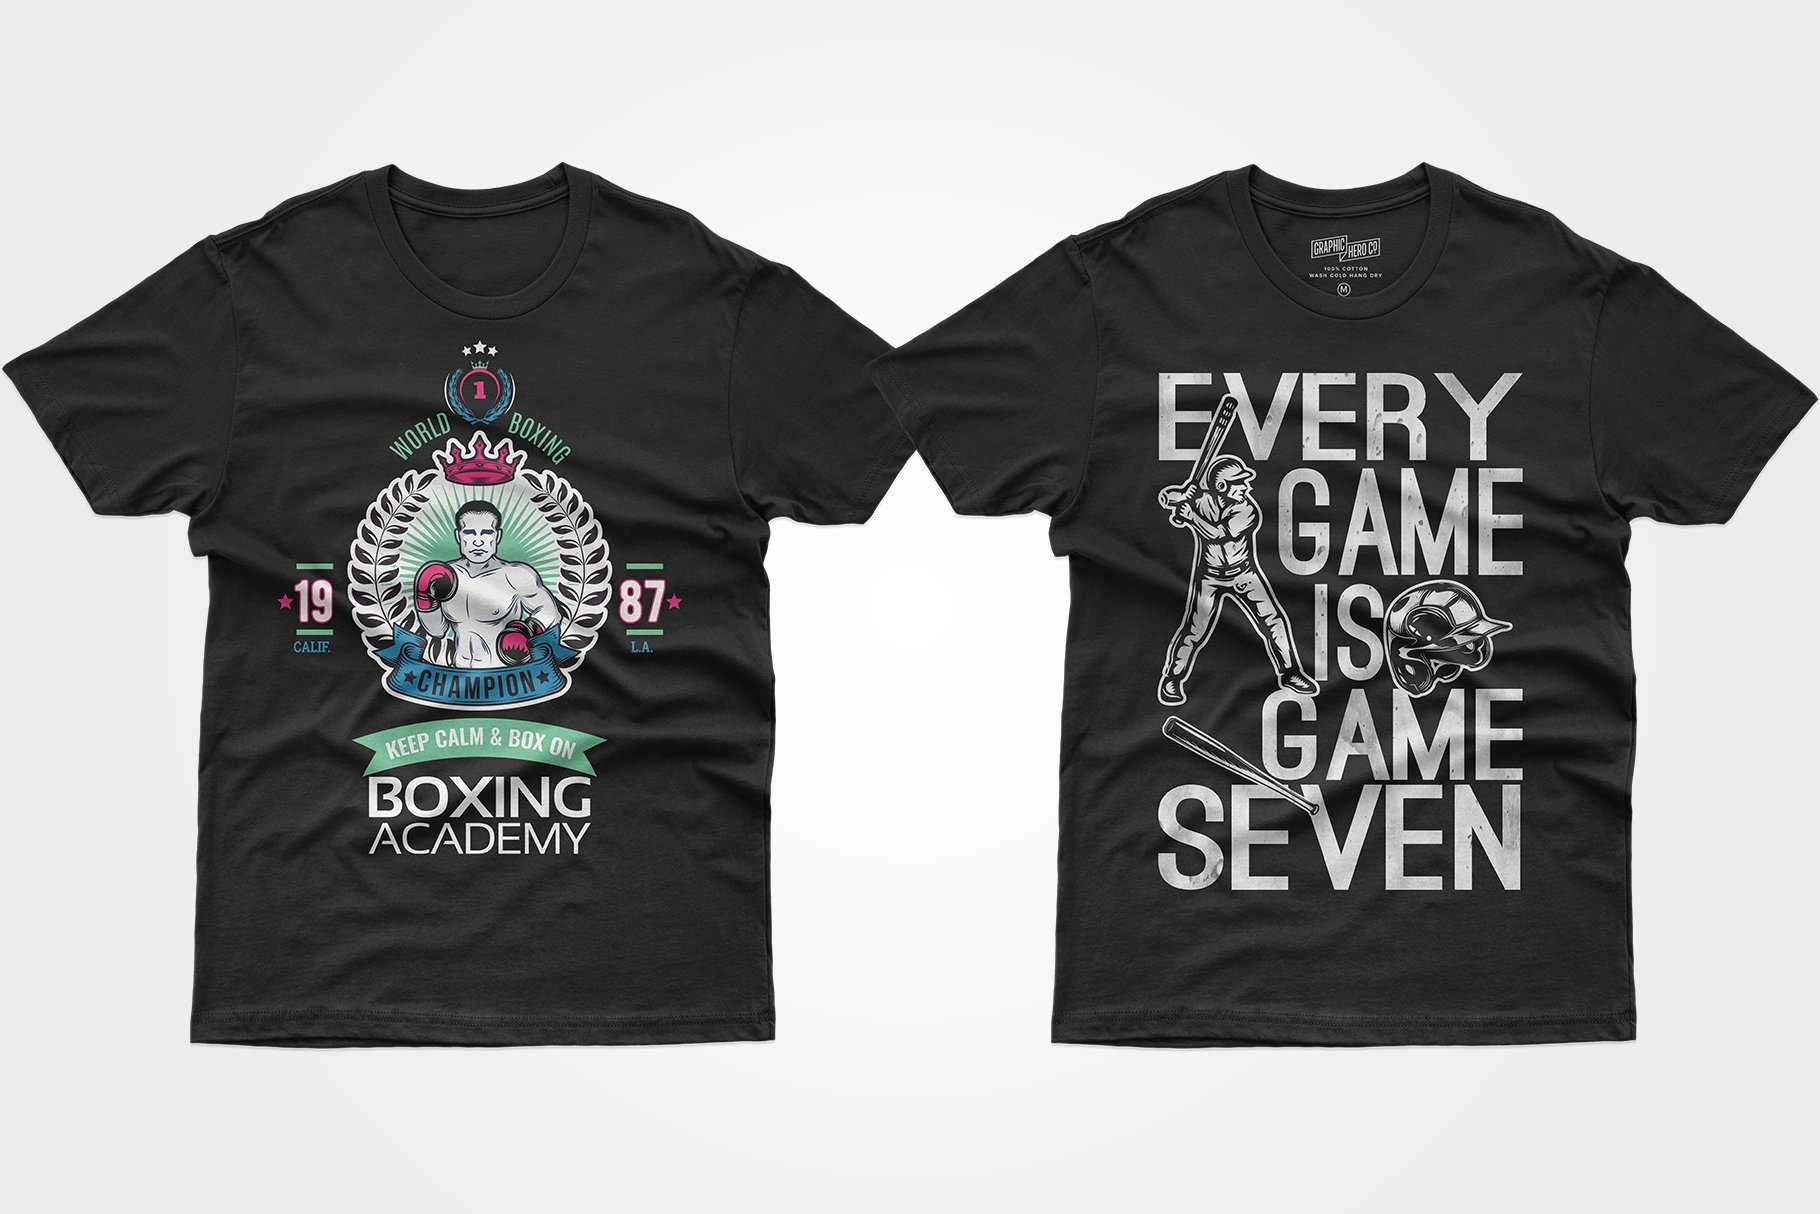 Two black T-shirts - one with a crowned boxer, the other with a baseball player.